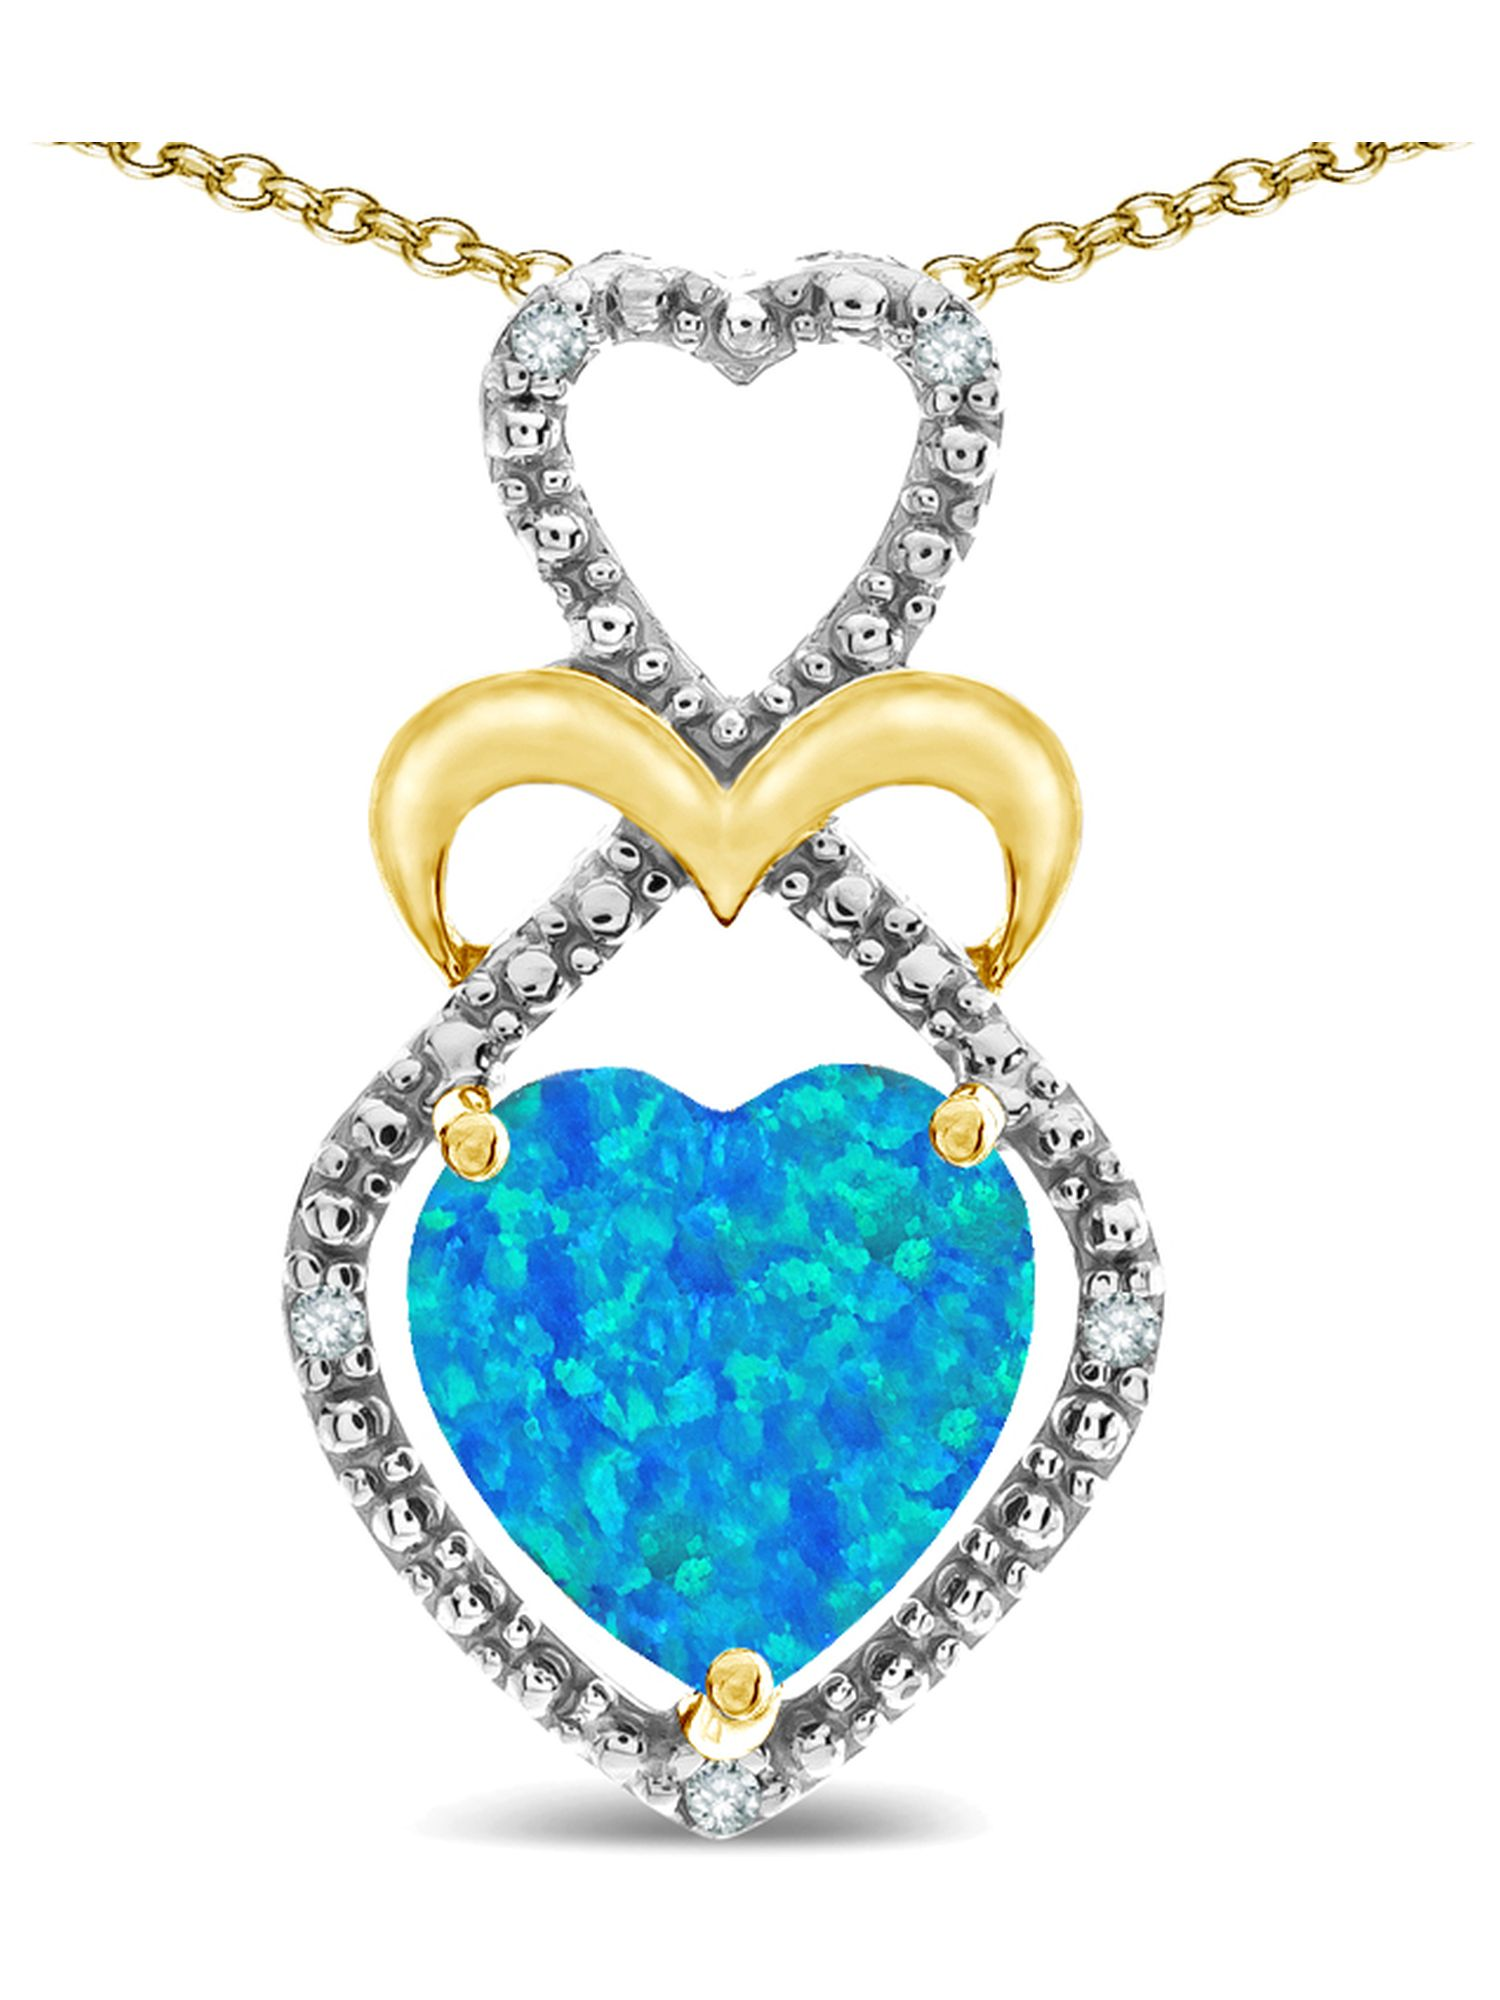 Star K Heart Shape 8mm Blue Created Opal Heart Halo Embrace Pendant Necklace 10k Yellow Gold with Rhodium Finish